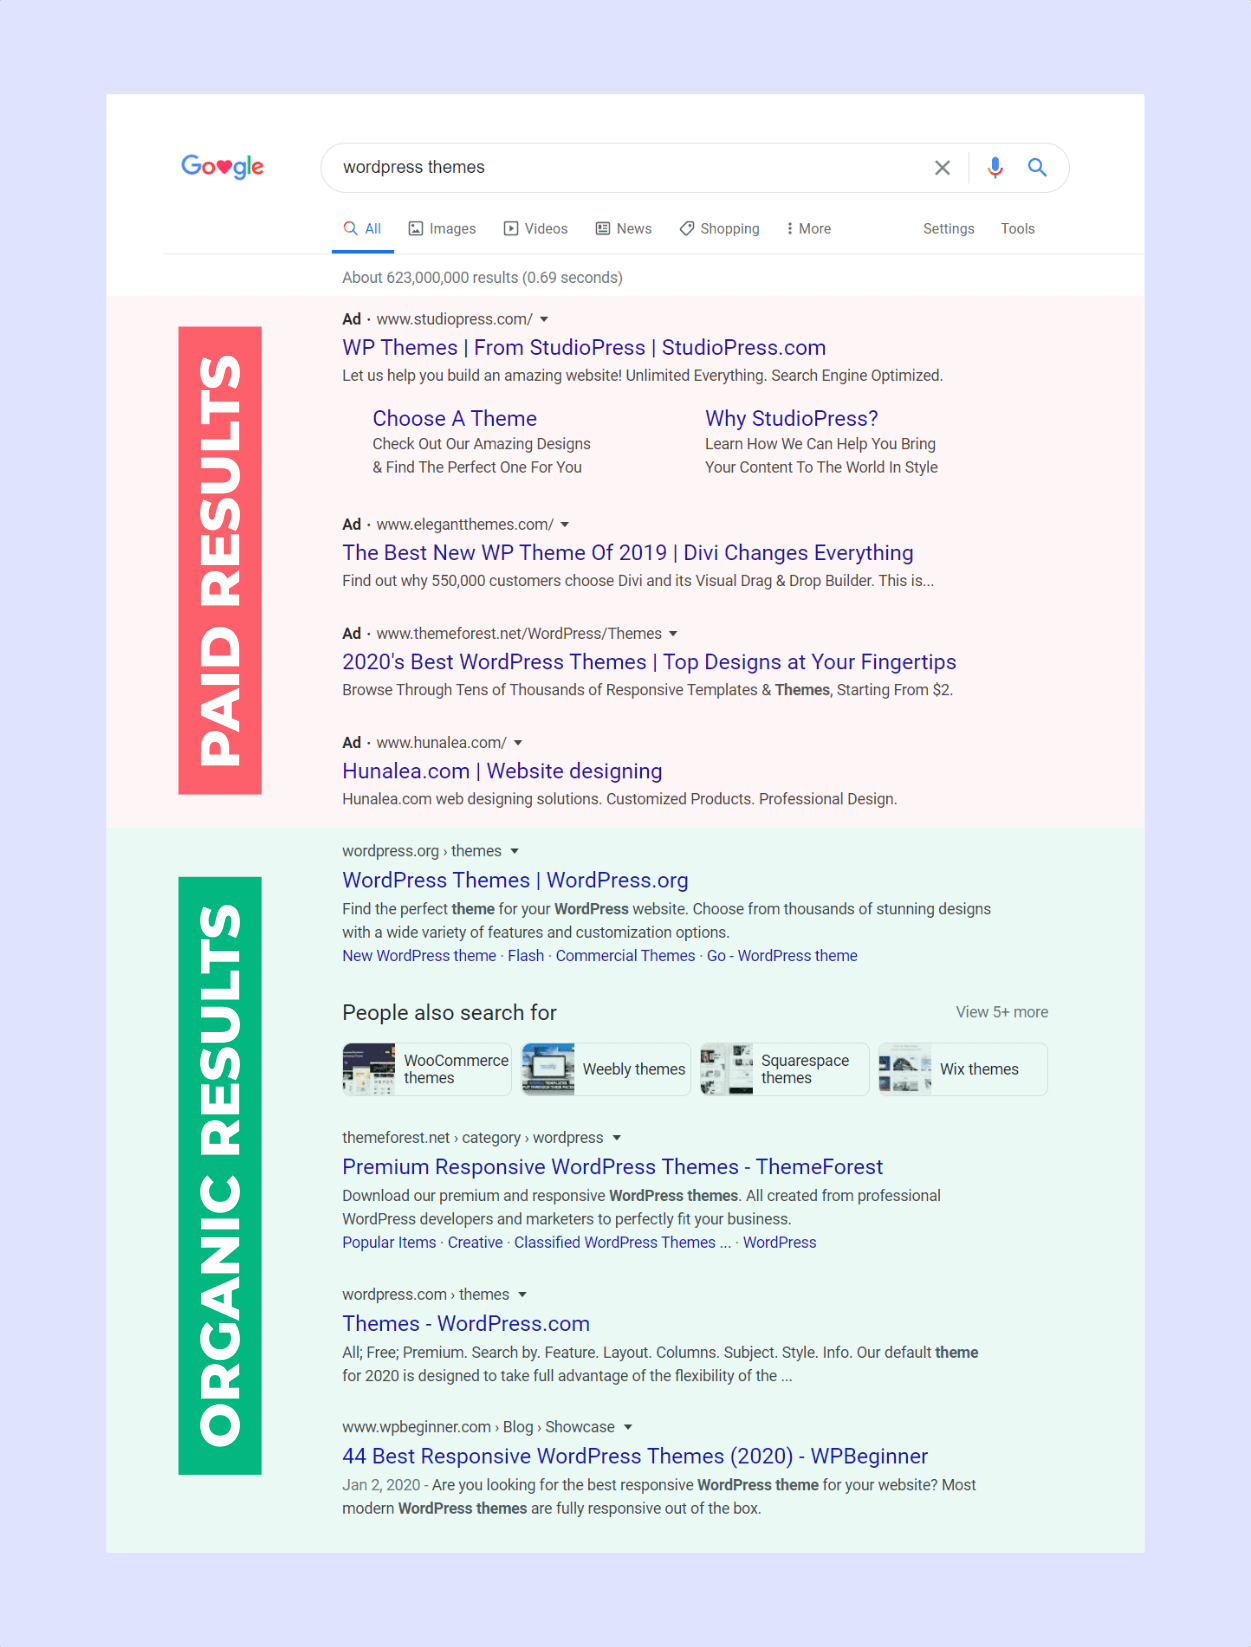 paid results vs. organic search results